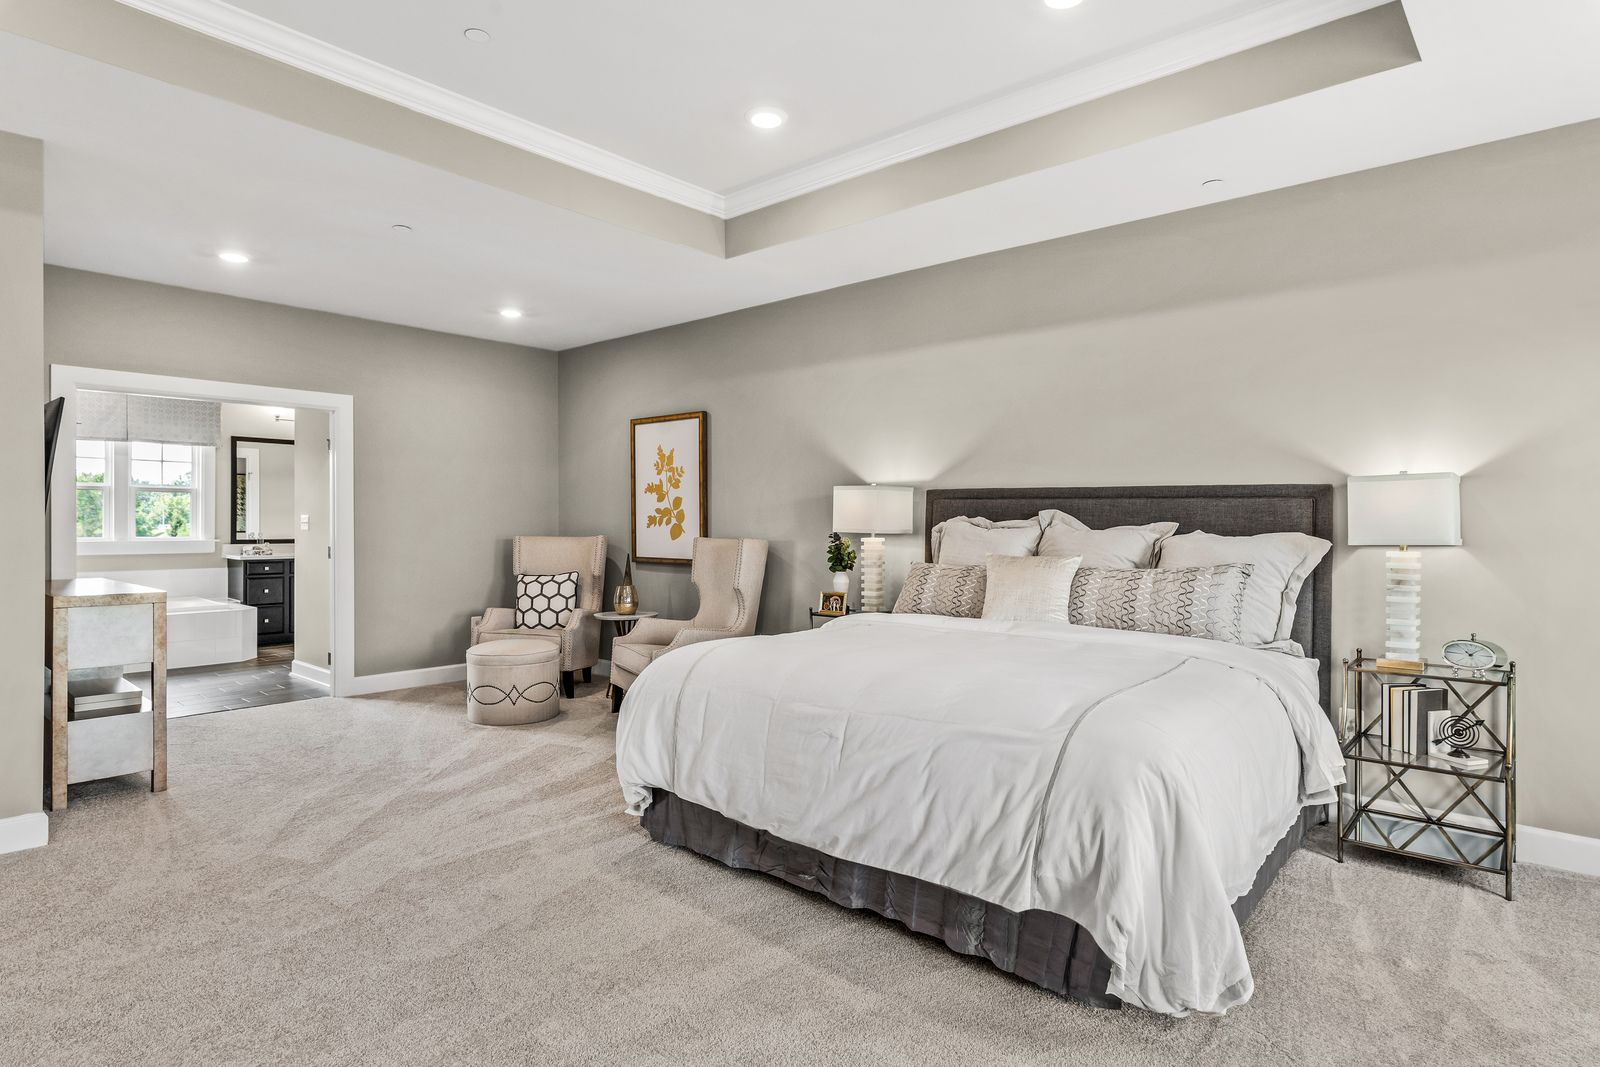 Bedroom featured in the Marymount By NVHomes in Philadelphia, PA